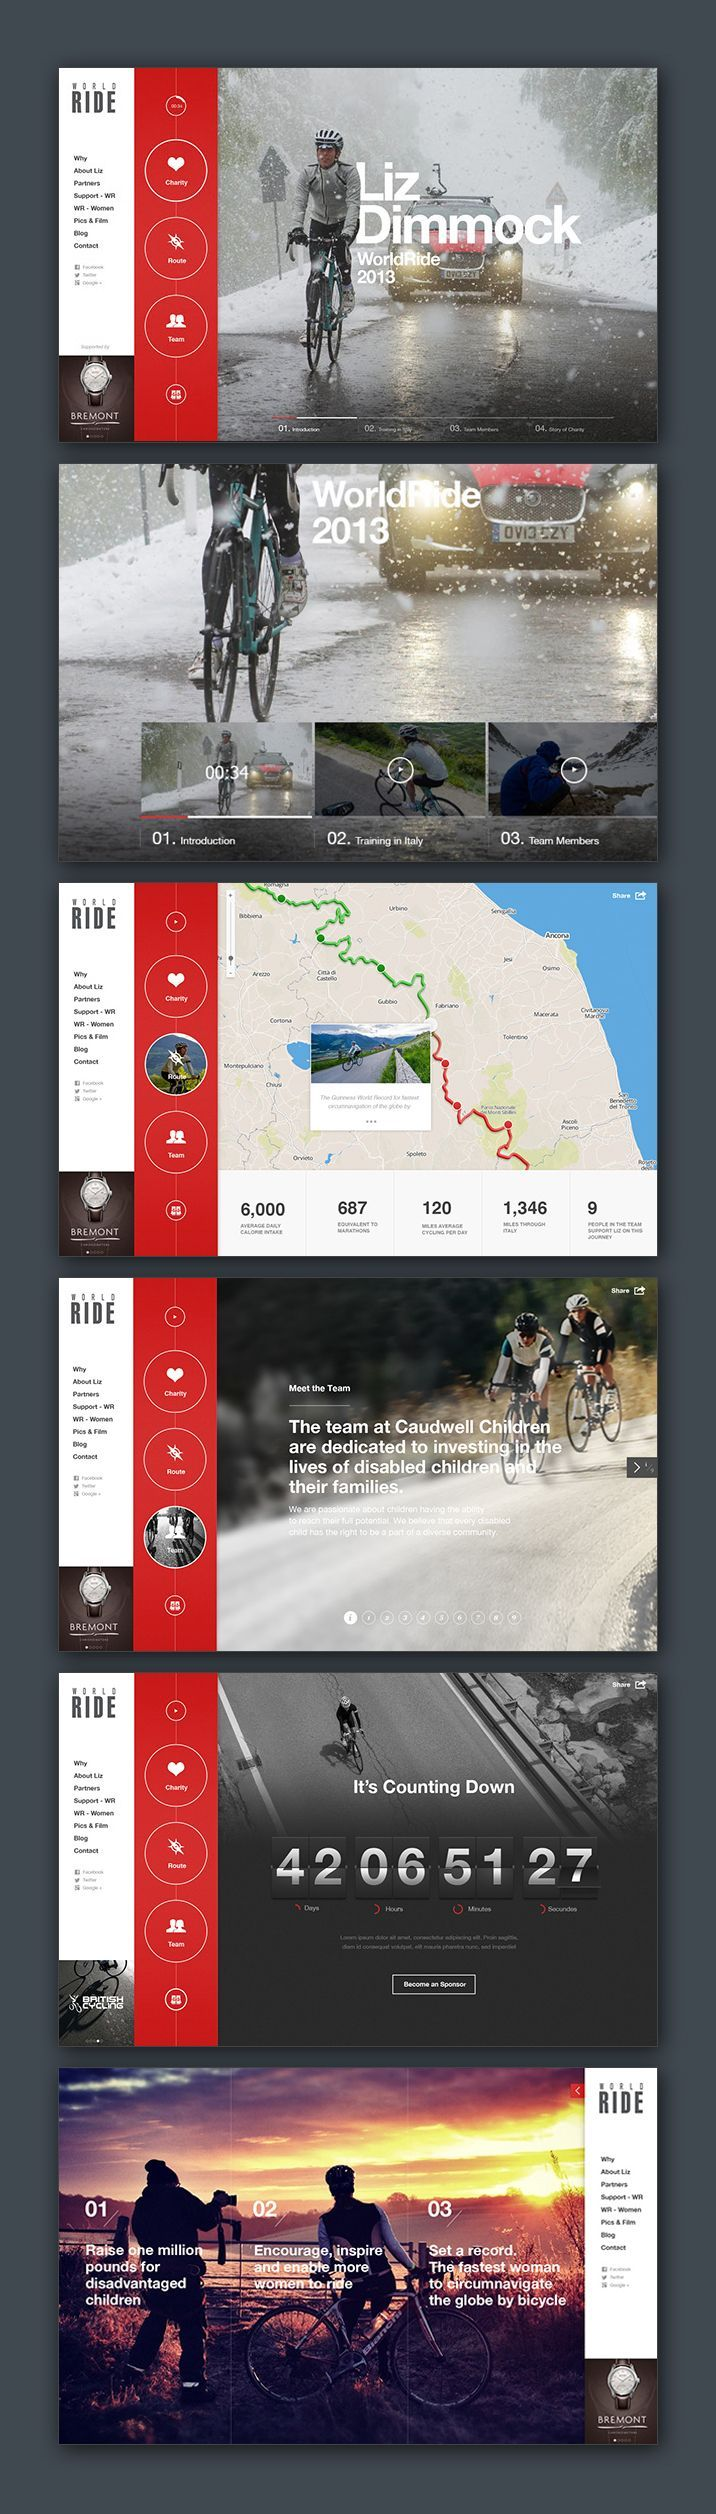 World Ride by Republik Media Web design http://www.amazon.com/gp/product/B018P97X0C